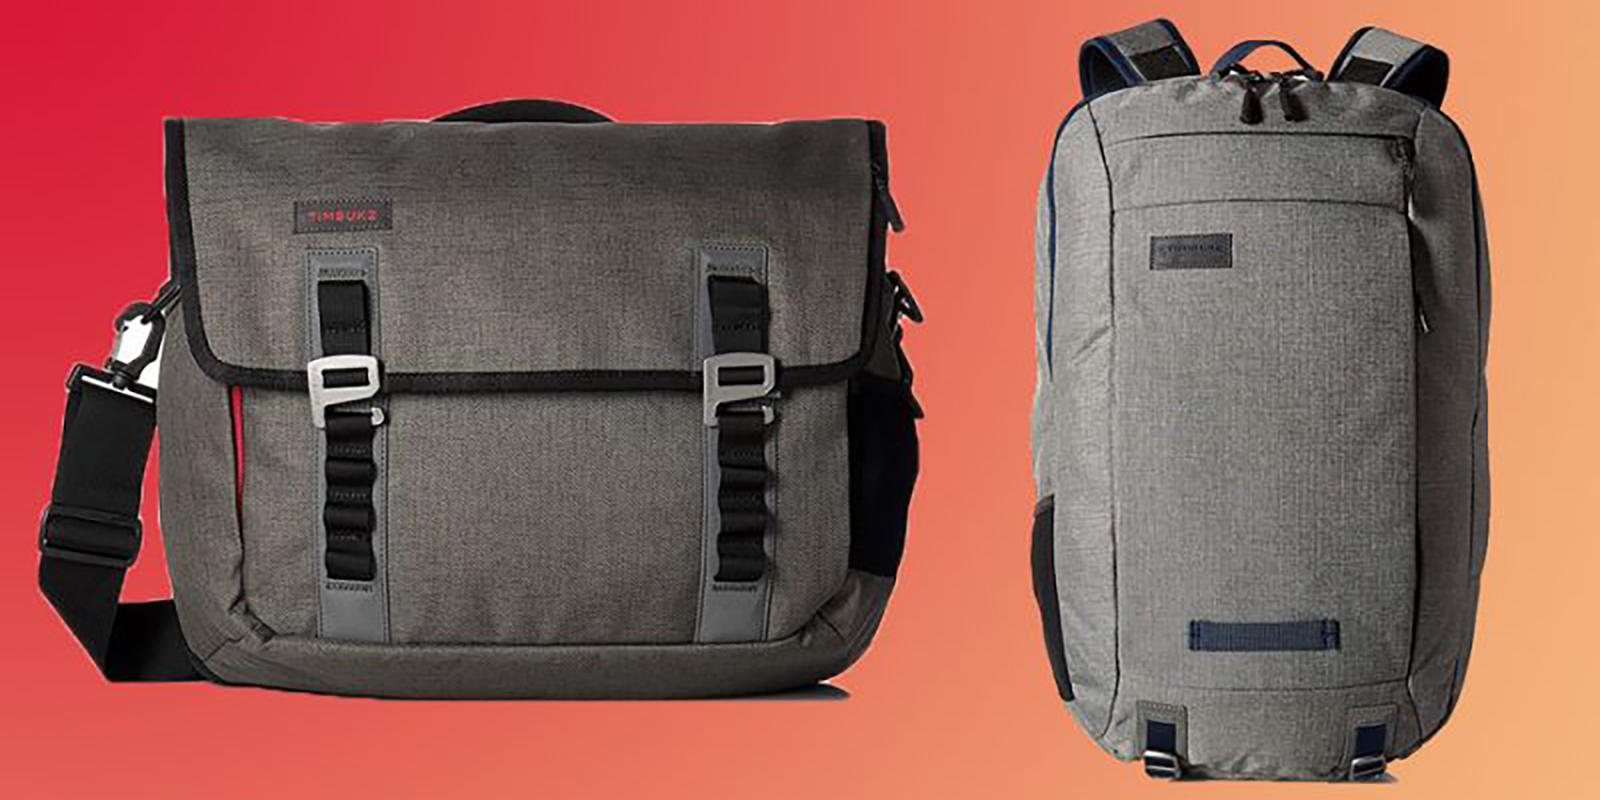 Laptop bags are 50% off on Amazon today